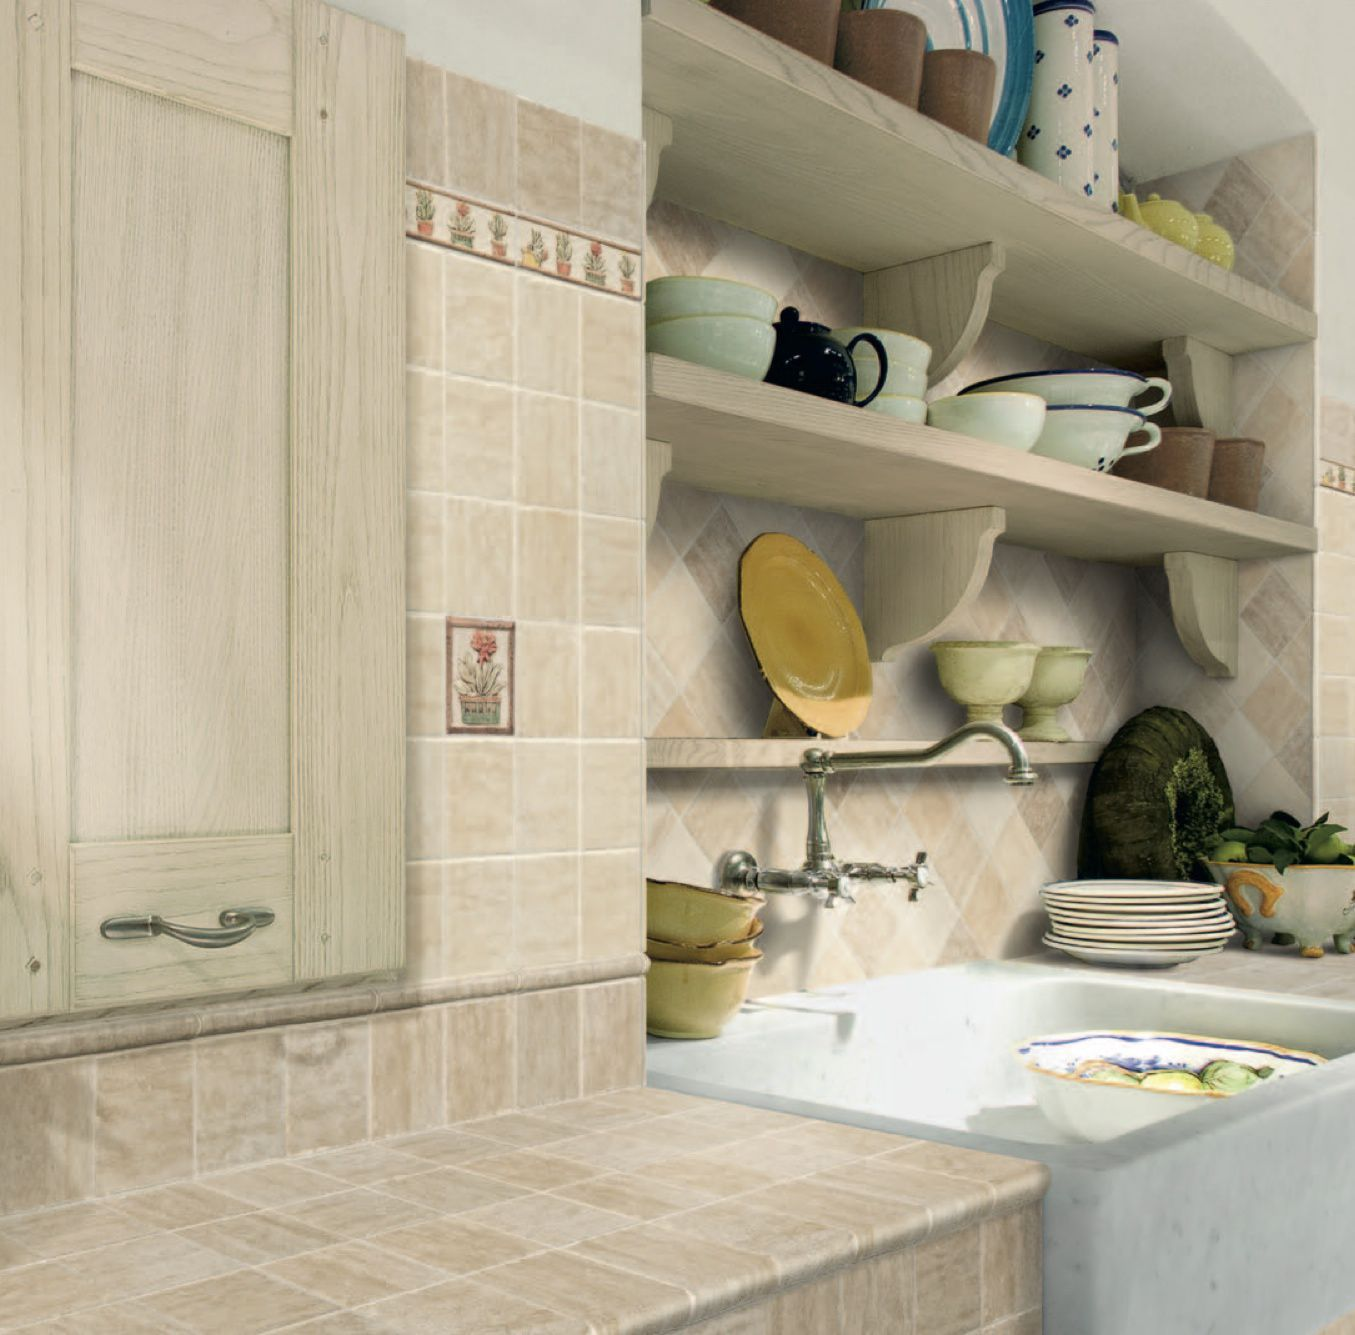 Kitchen Wall And Floor Tiles Bathroom Tile Kitchen Wall Ceramic Castelli Ceramica Alta